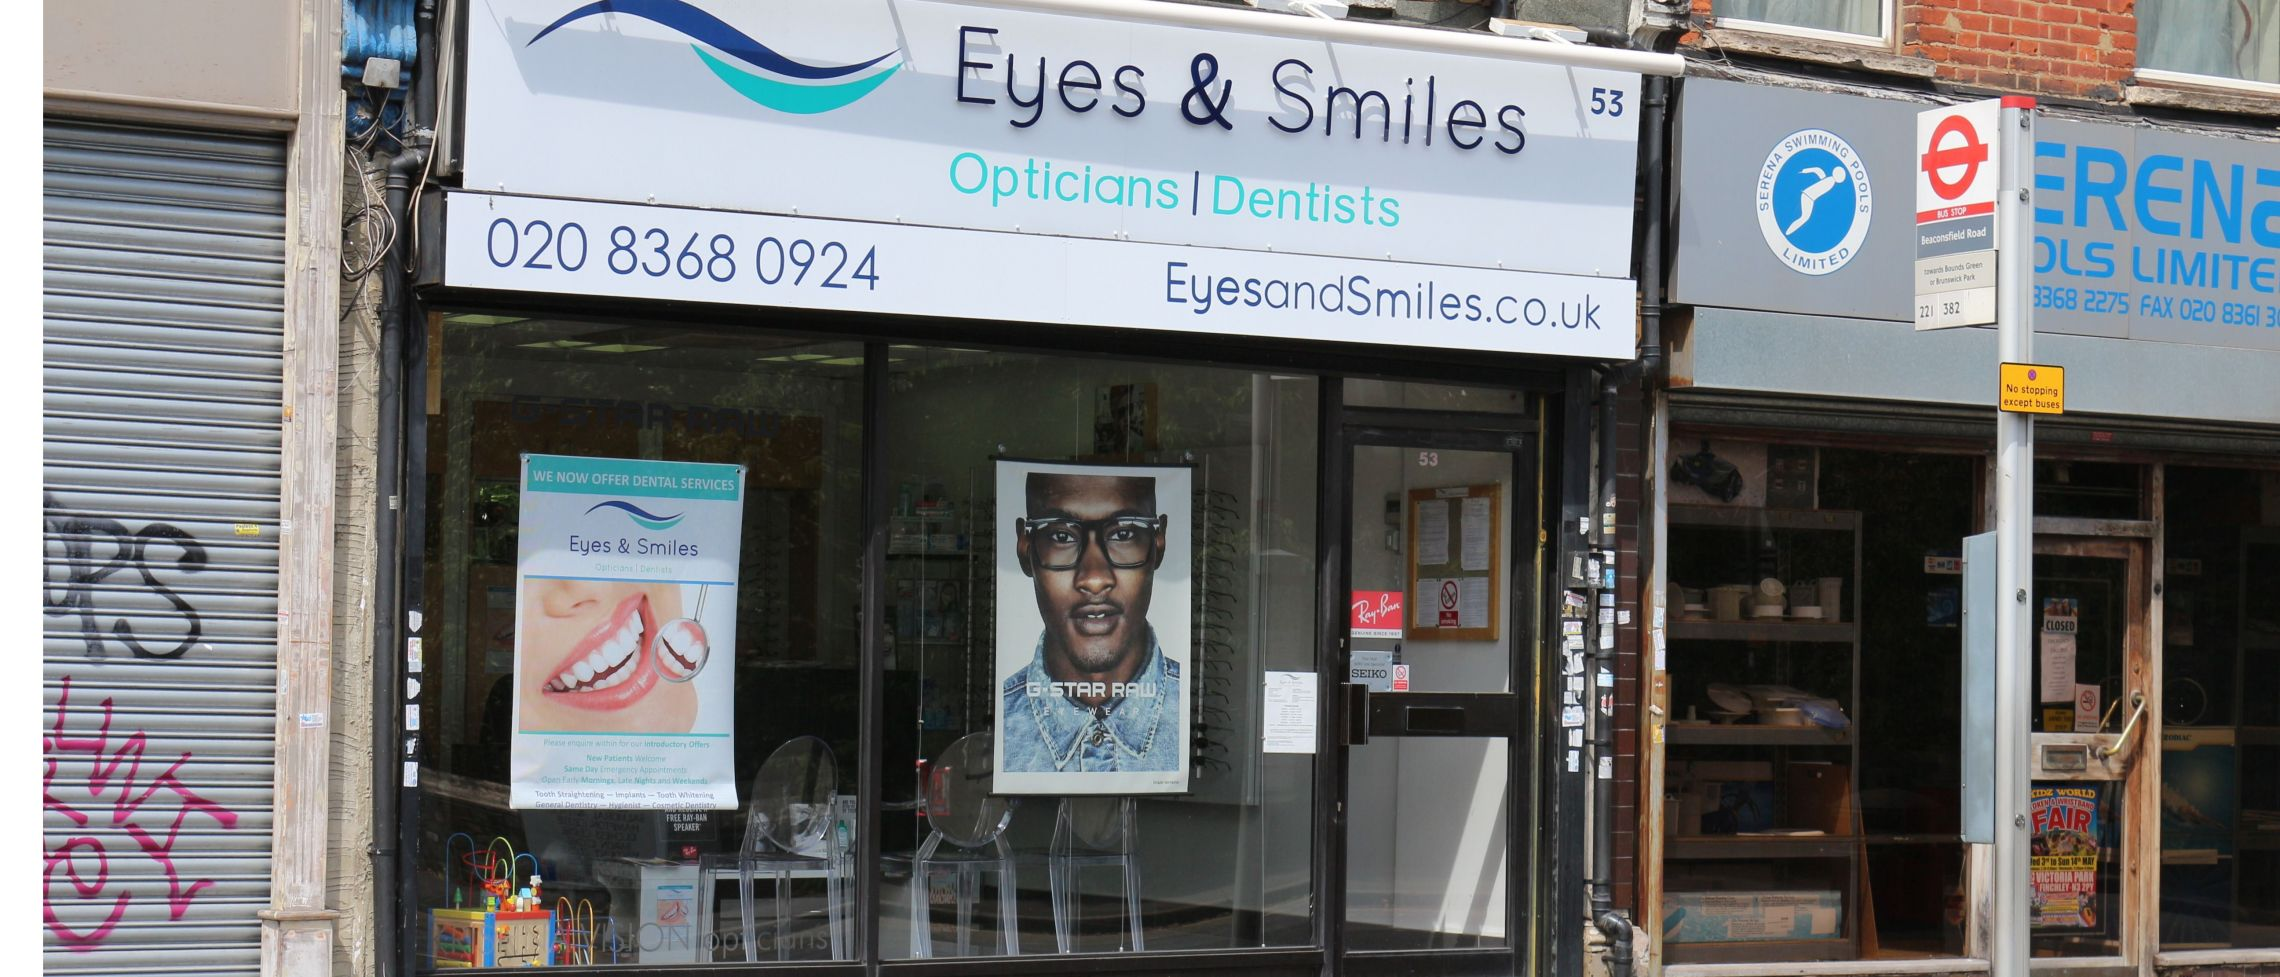 Eyes & Smiles Dental Practice